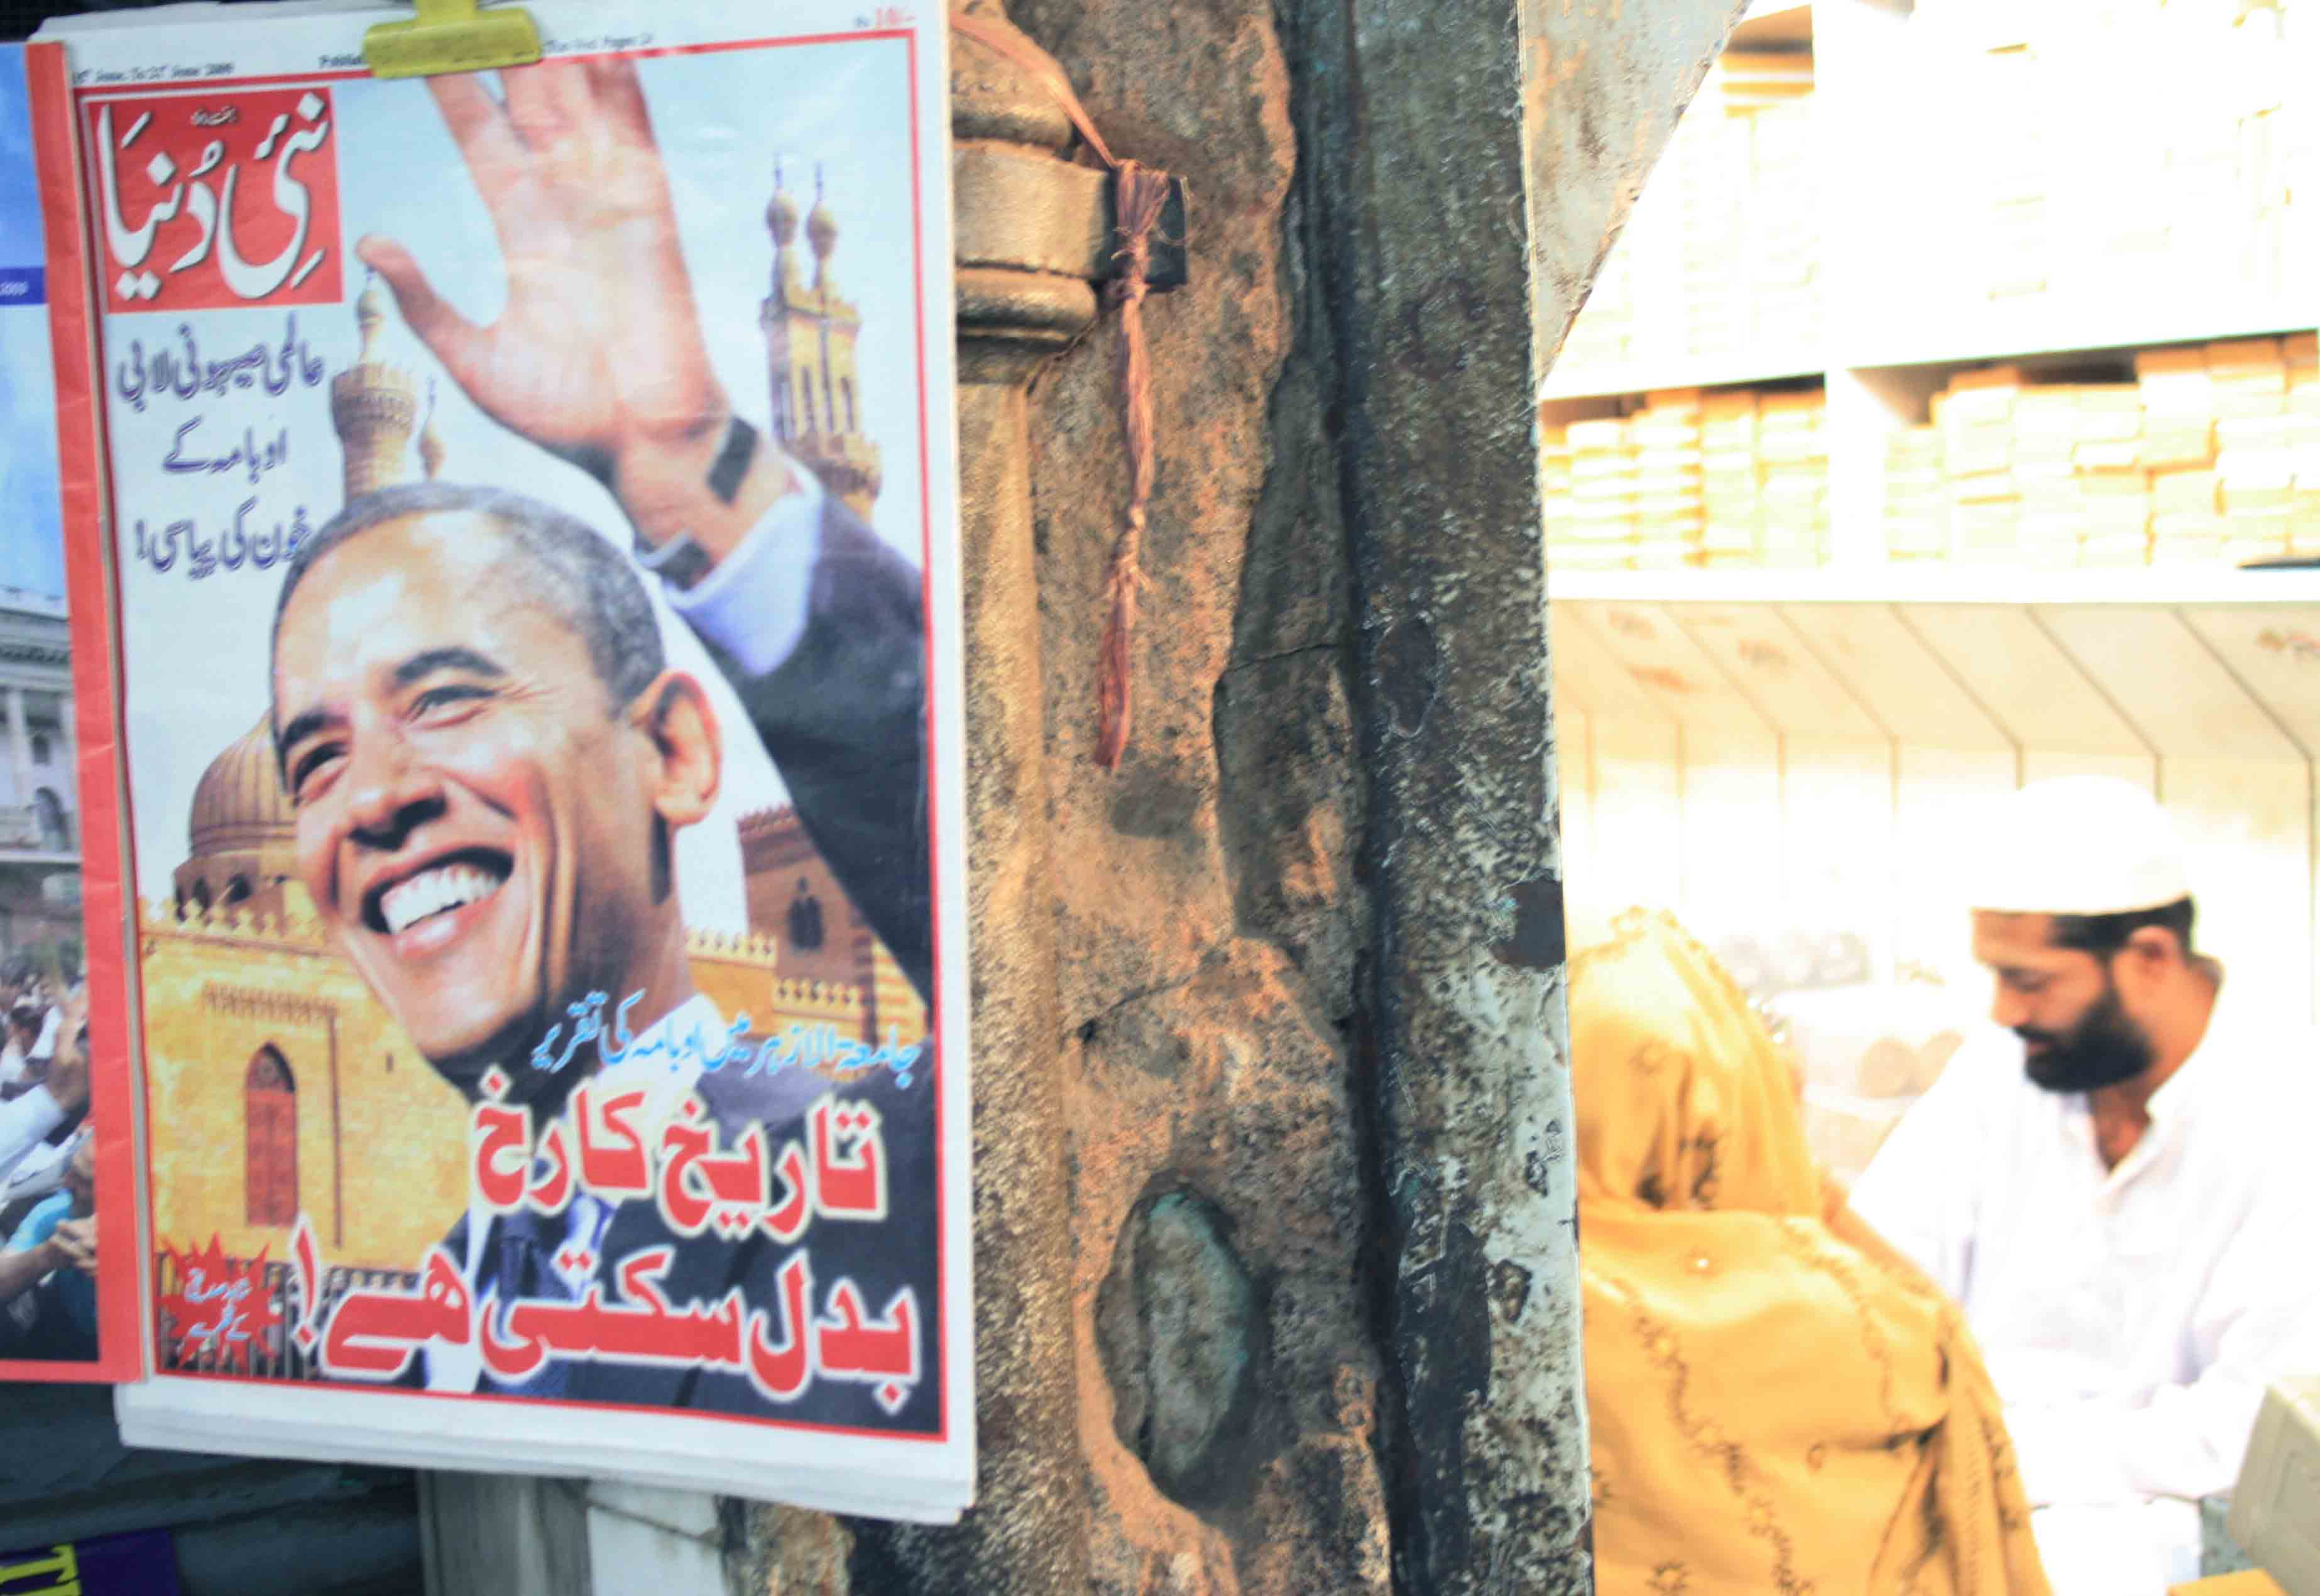 Delhi Archives - Barack Chowk, Obama Vihar